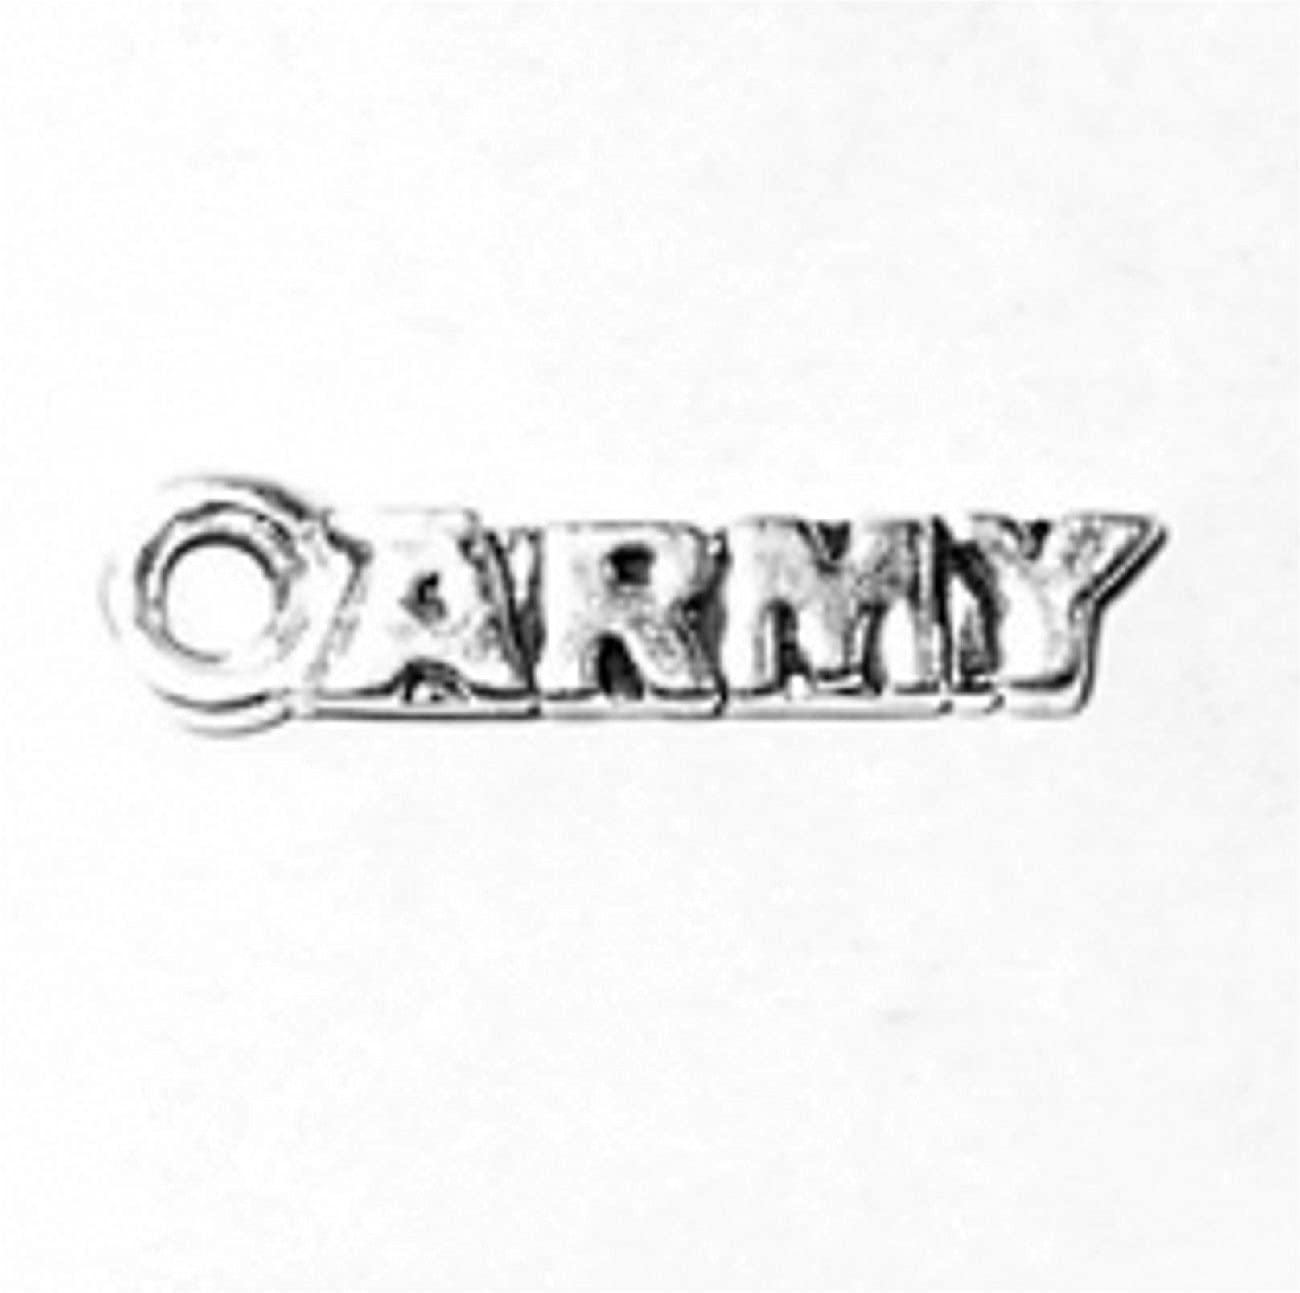 Sterling Silver 7 4.5mm Charm Bracelet With Attached Small Army Word Charm